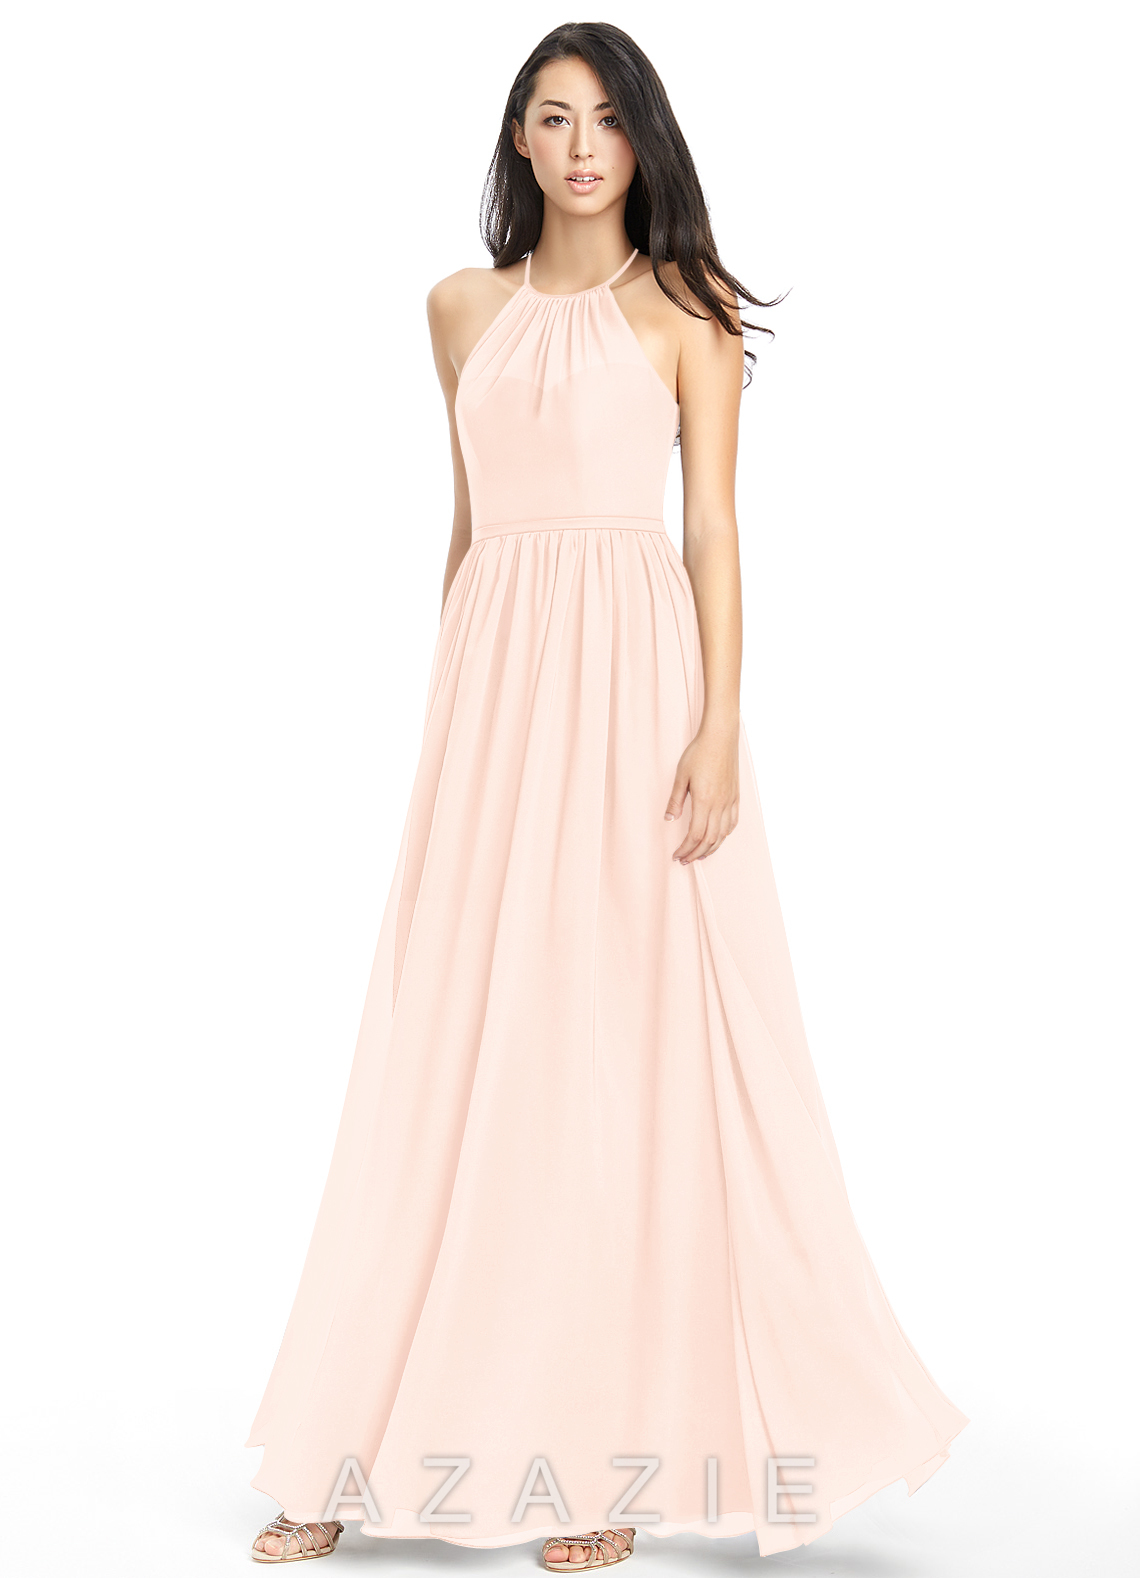 Pearl Pink Bridesmaid Dresses & Pearl Pink Gowns | Azazie